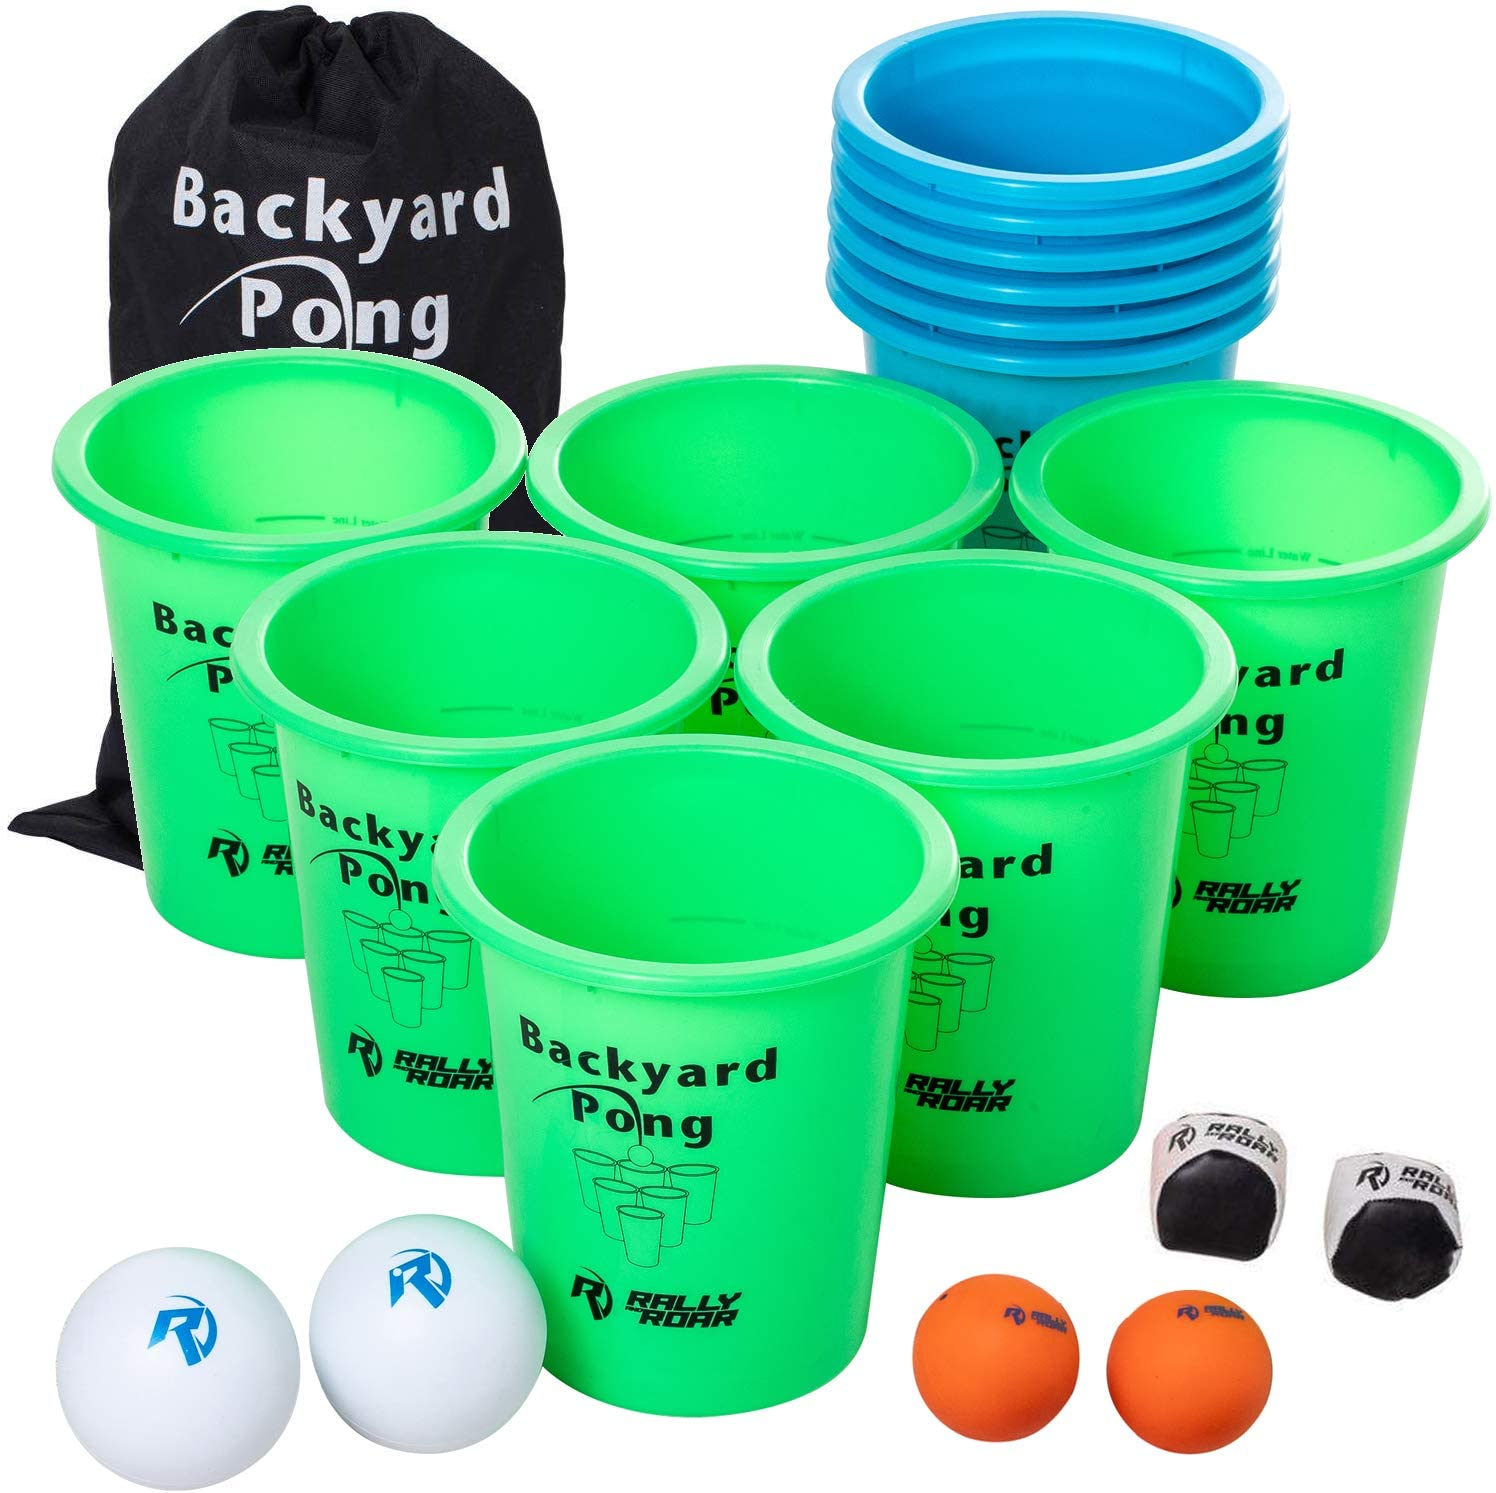 Jumbo PREMIUM Beer Pong Set for Outdoors by Rally and Roar – Dual Colored Cups, 6 balls - Fun Drinking Games for Adults, College Age - Jumbo Cup and Pong Throwing Game for Yard, Party, Bar, Lawn